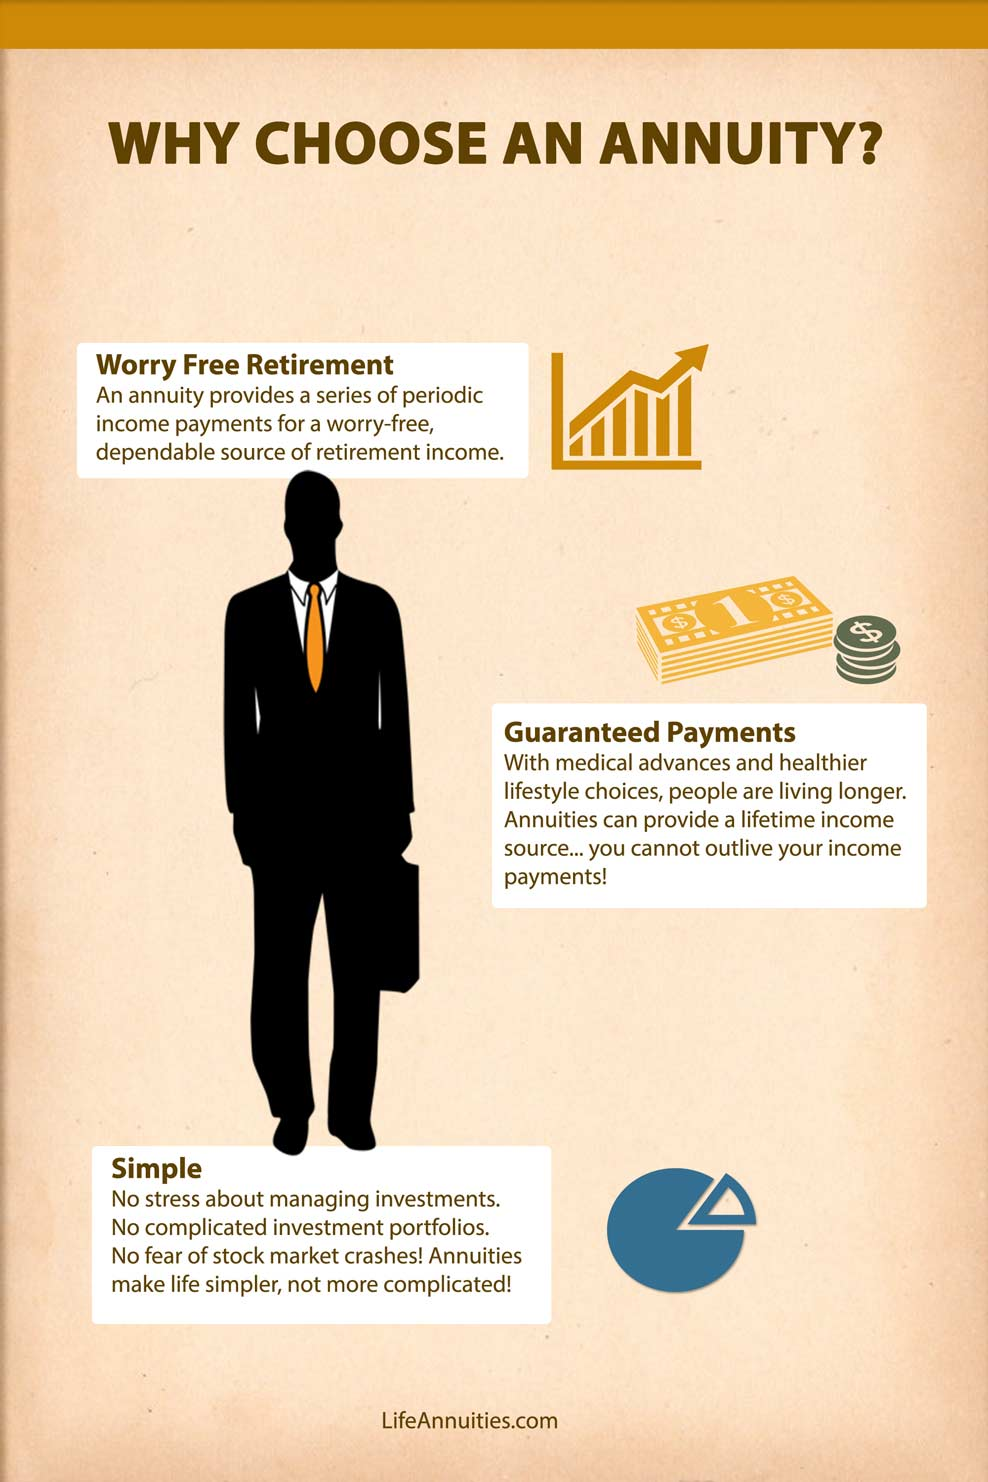 Why Choose an Annuity?